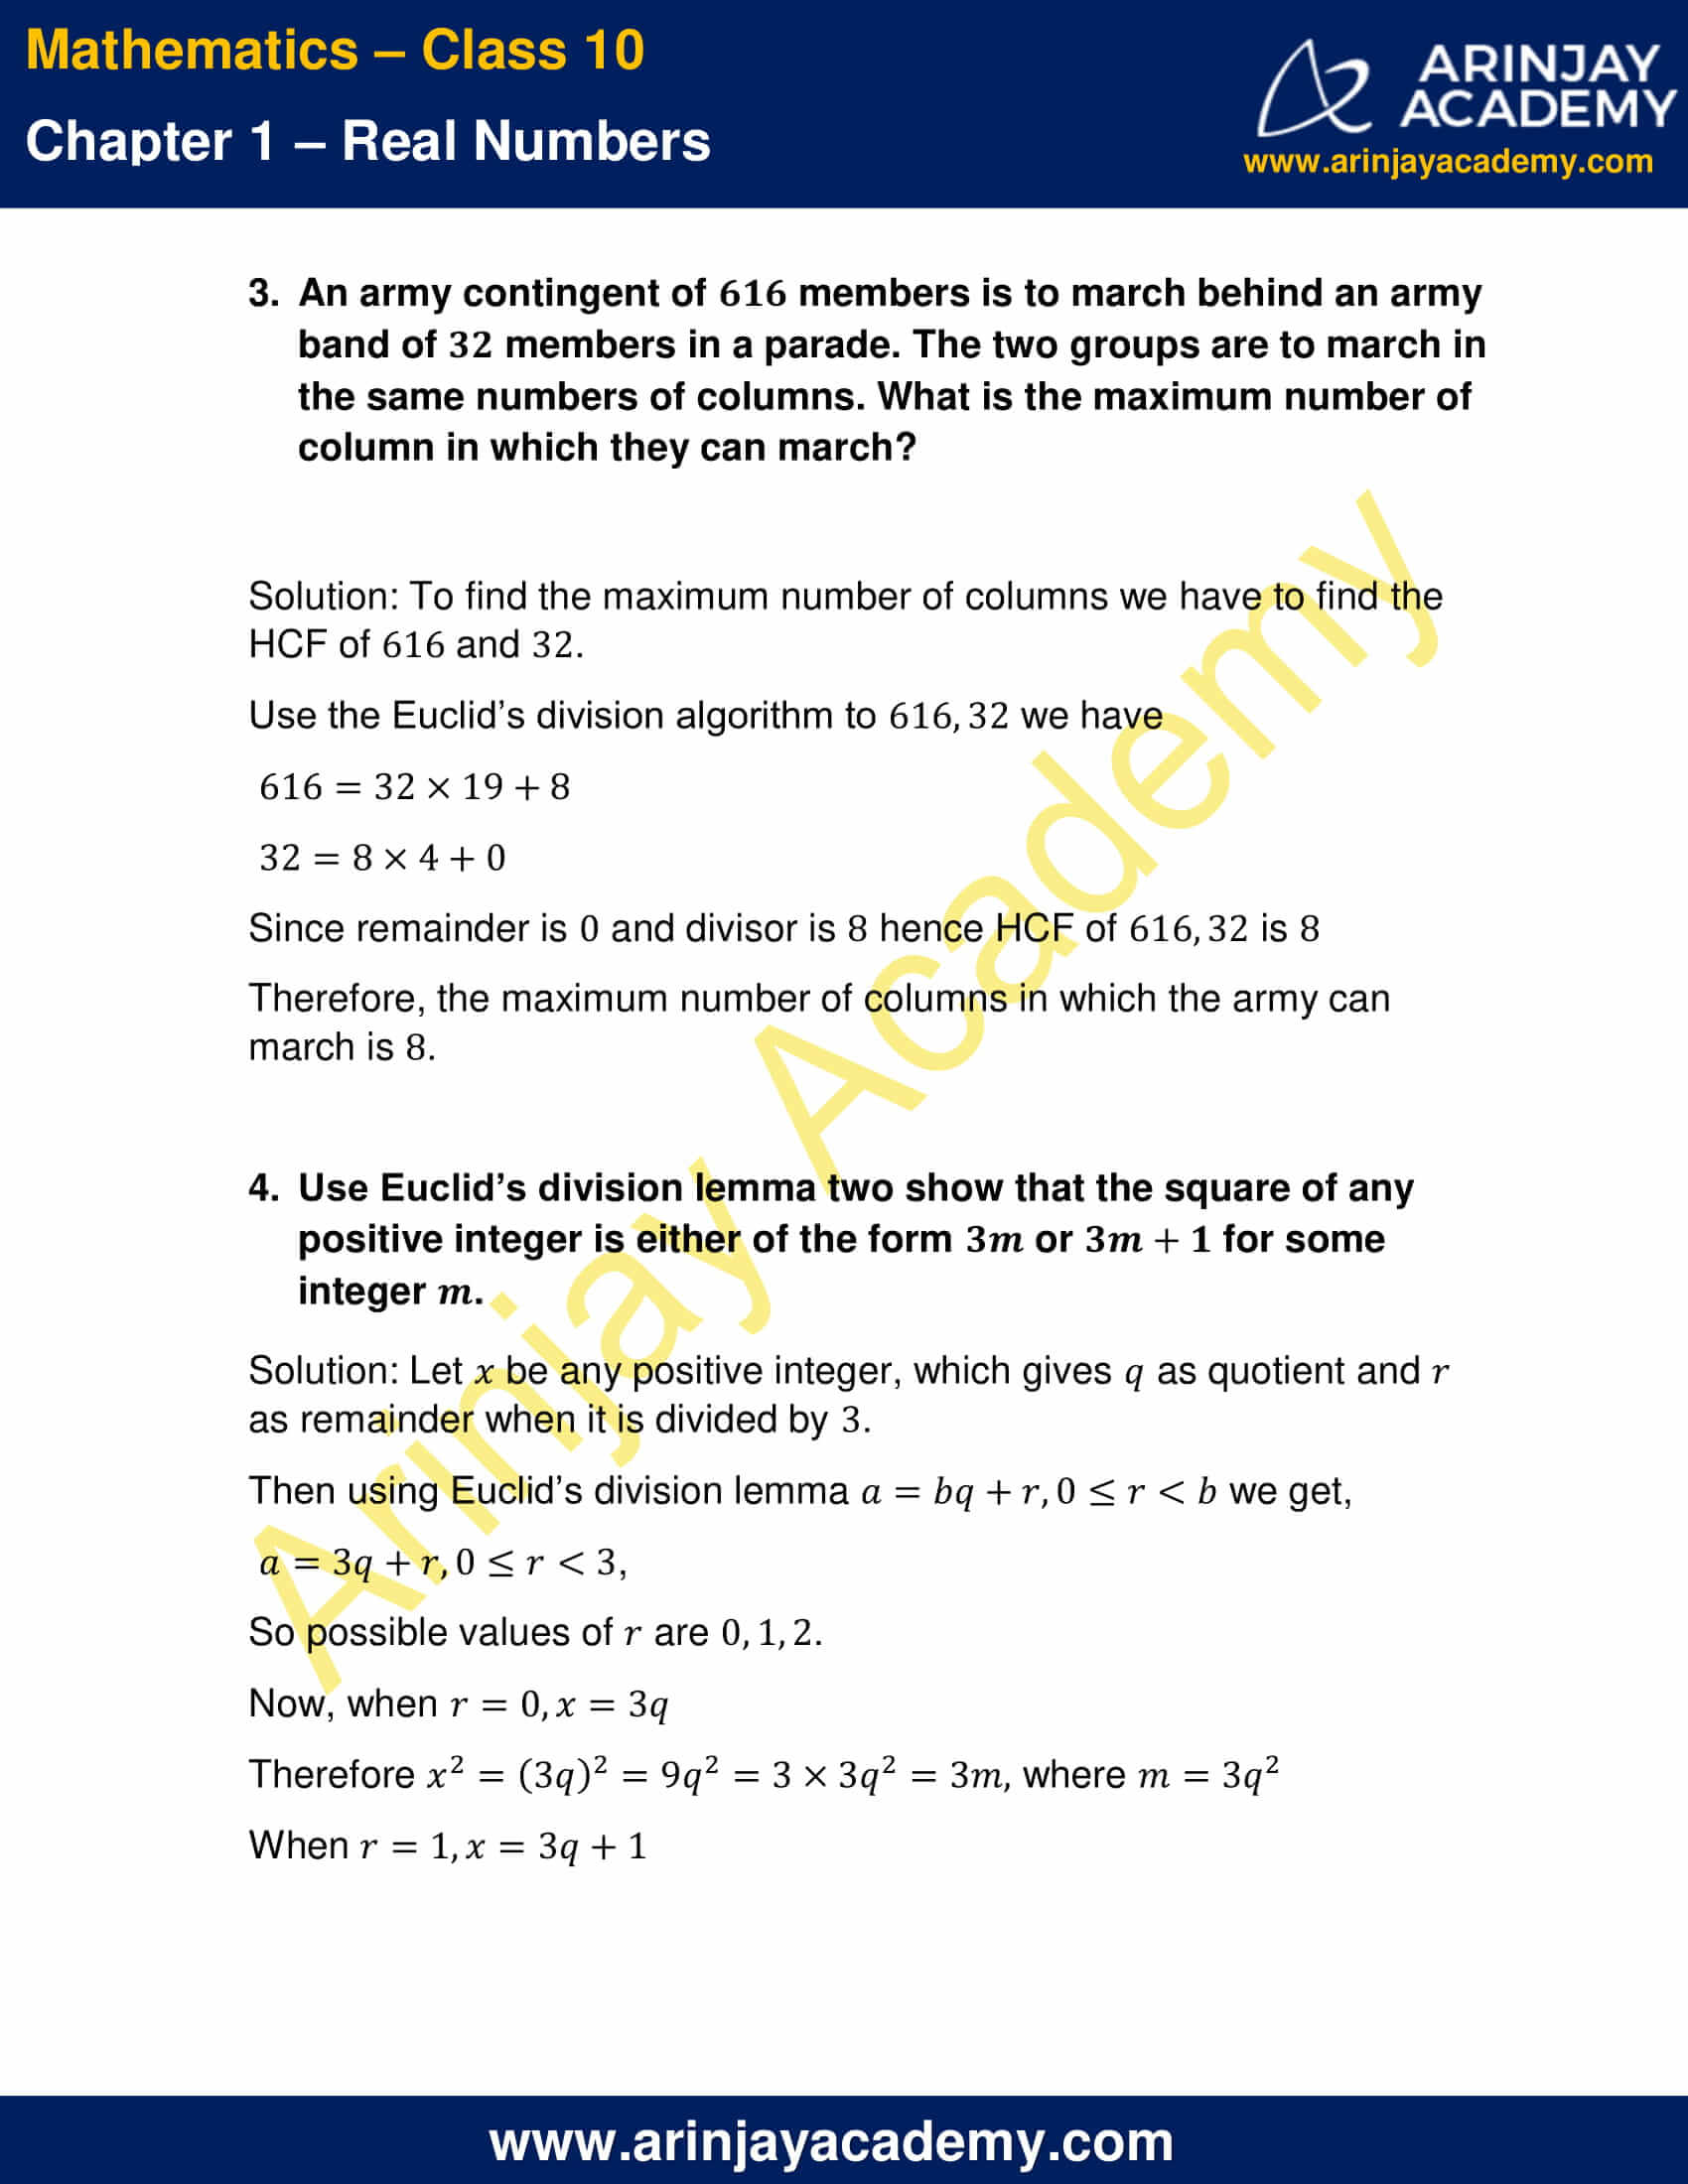 NCERT Solutions For Class 10 Maths Chapter 1 Exercise 1.1 part 3